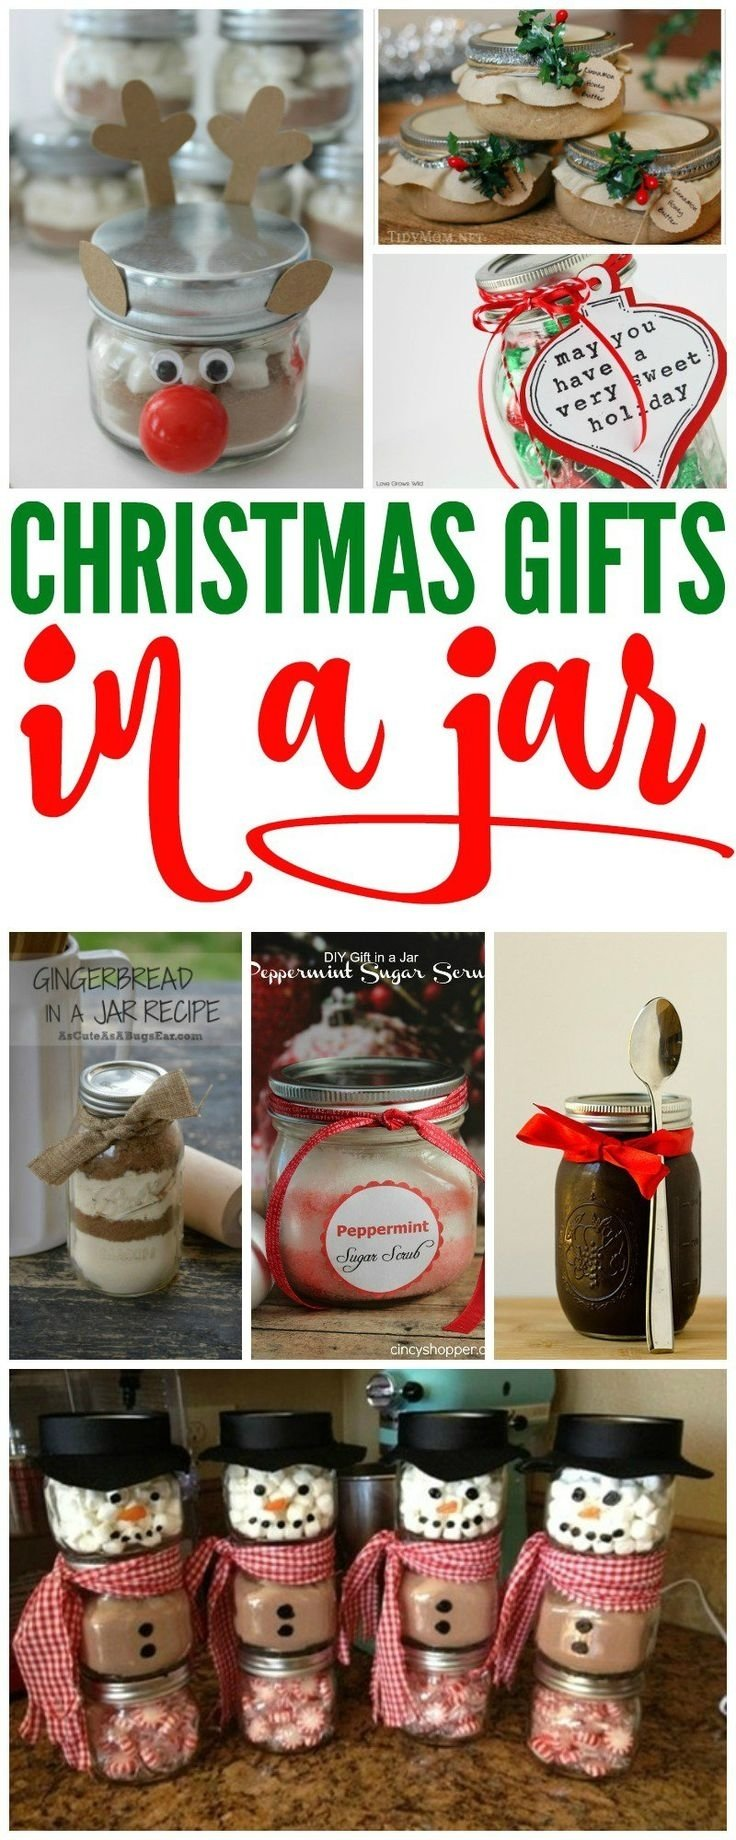 10 Trendy Cheap Christmas Gift Ideas For Family 1034 best diy gift ideas images on pinterest hand made gifts 6 2020